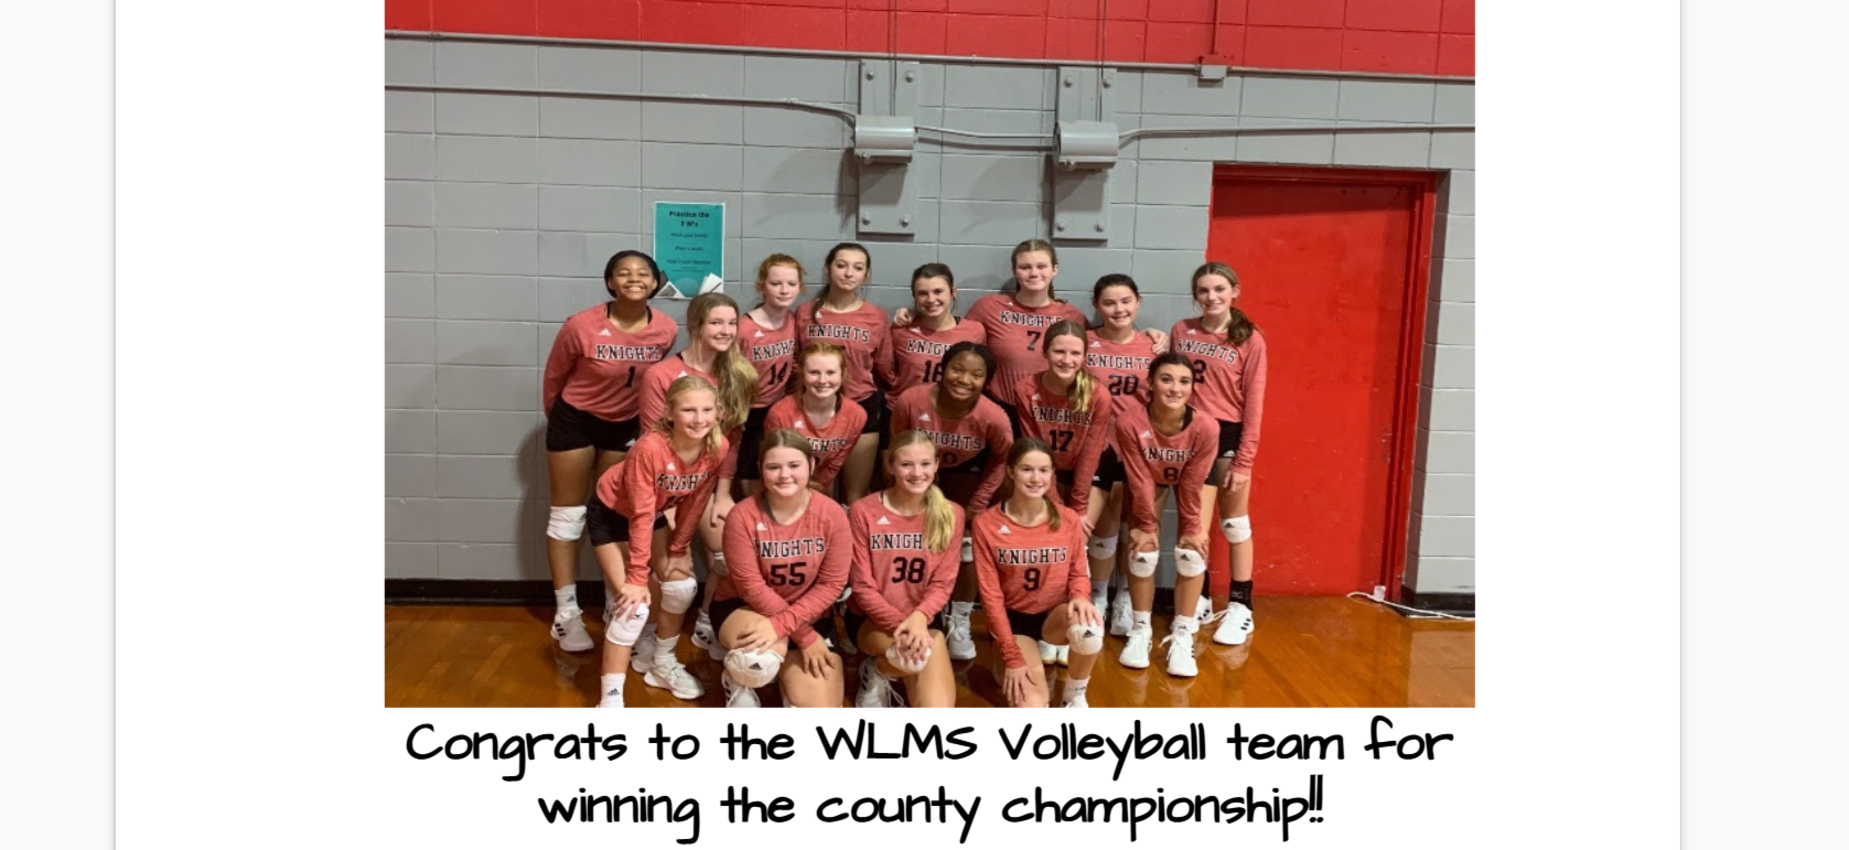 Congrats to WLMS Volleyball for winning the county championship